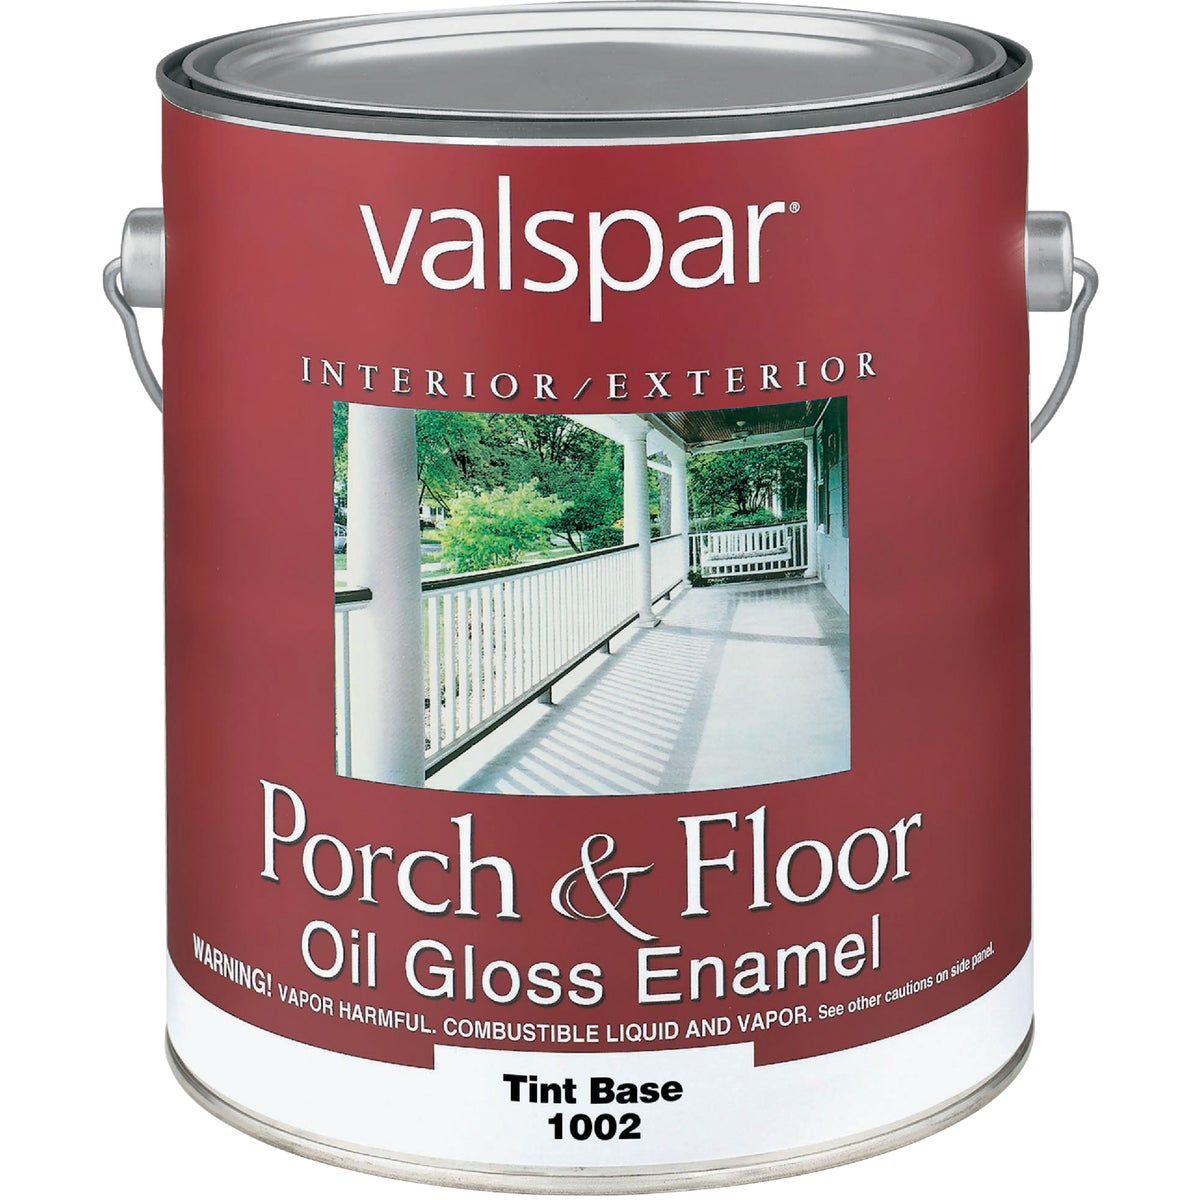 TINT BS OIL FLOOR ENAMEL - 027.0001002.007 by Valspar Corp